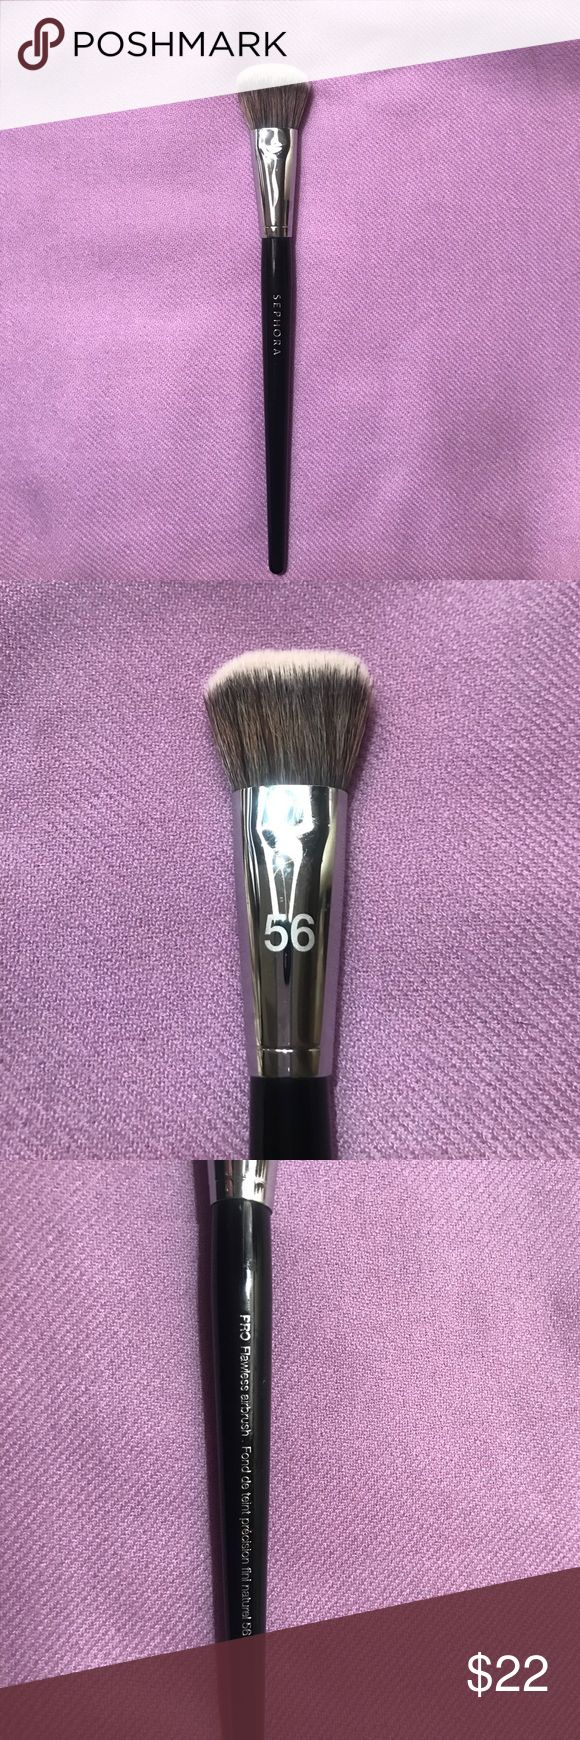 Sephora Air Brush #56 What it is: This expert brush applies all types of foundation and provides a natural, airbrushed finish. What it does: Buff on your favorite foundation or powder with this brush designed to provide greater precision and maximum control. The brush head is densely packed with short, synthetic bristles, ideal for building coverage in layers until you've reached your desired finish.  Only used once. Completely cleaned and sanitized. Sephora Makeup Brushes & Tools